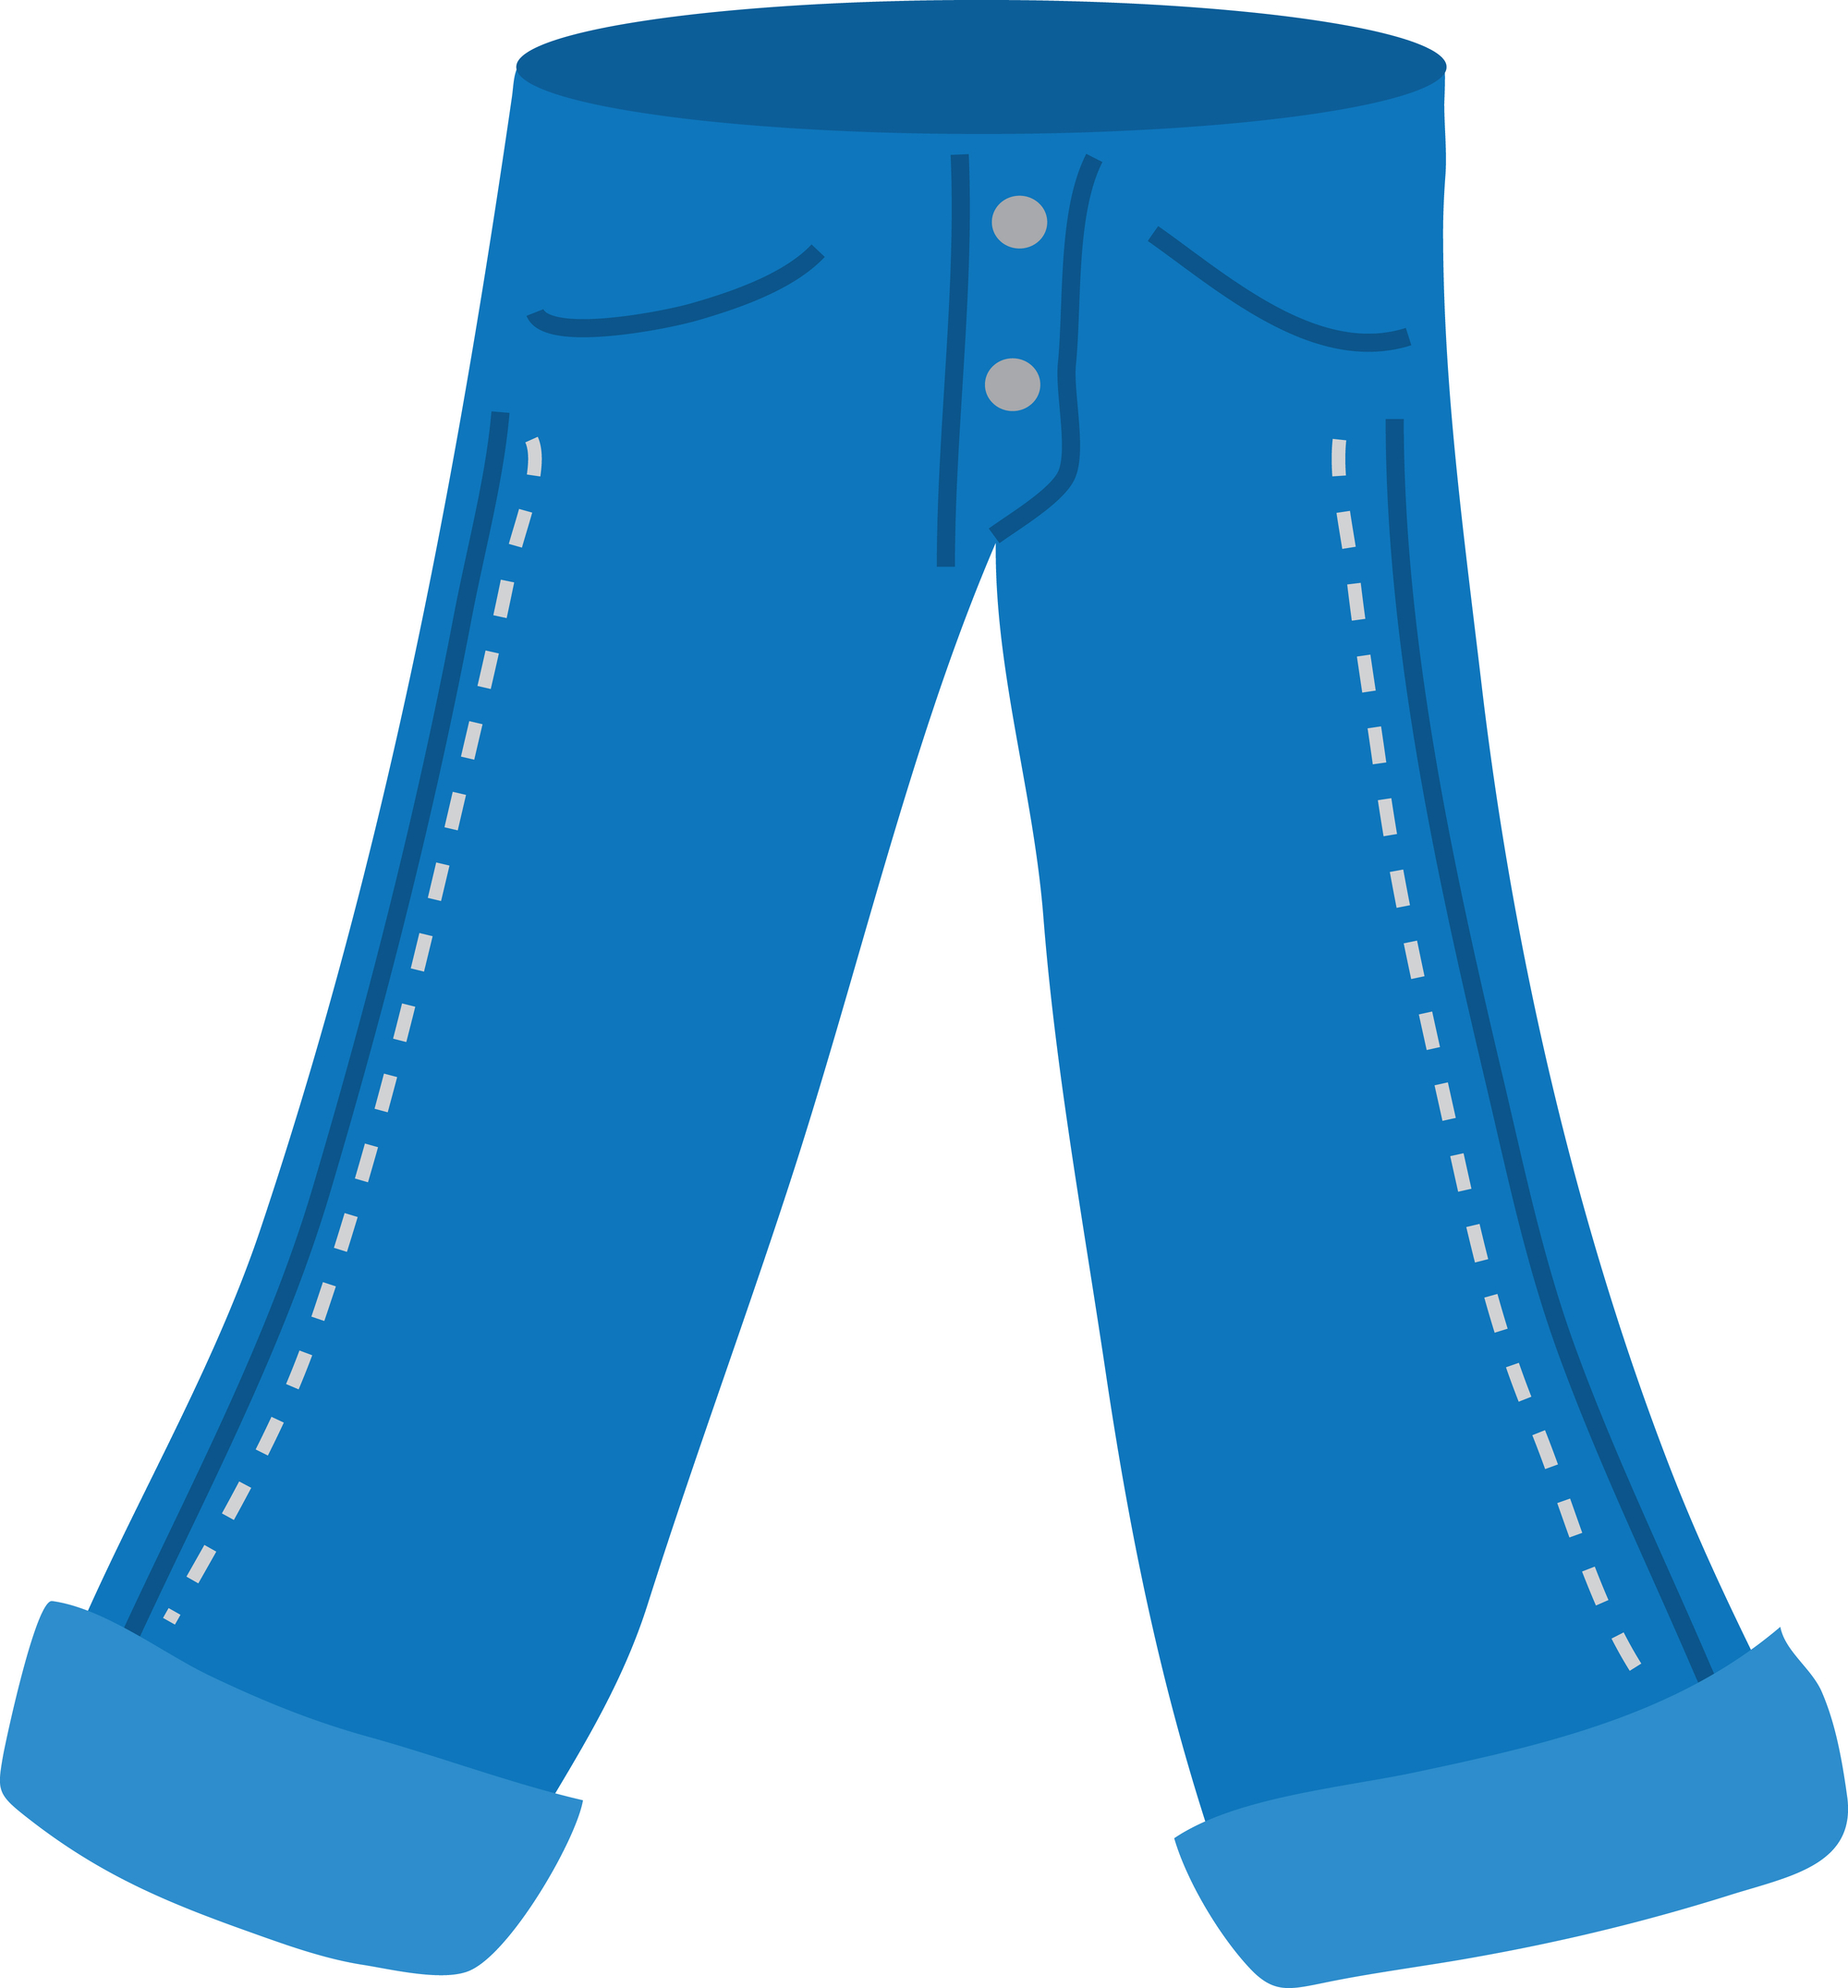 Free Mens Pants Cliparts, Download Free Clip Art, Free Clip Art on ... image library stock